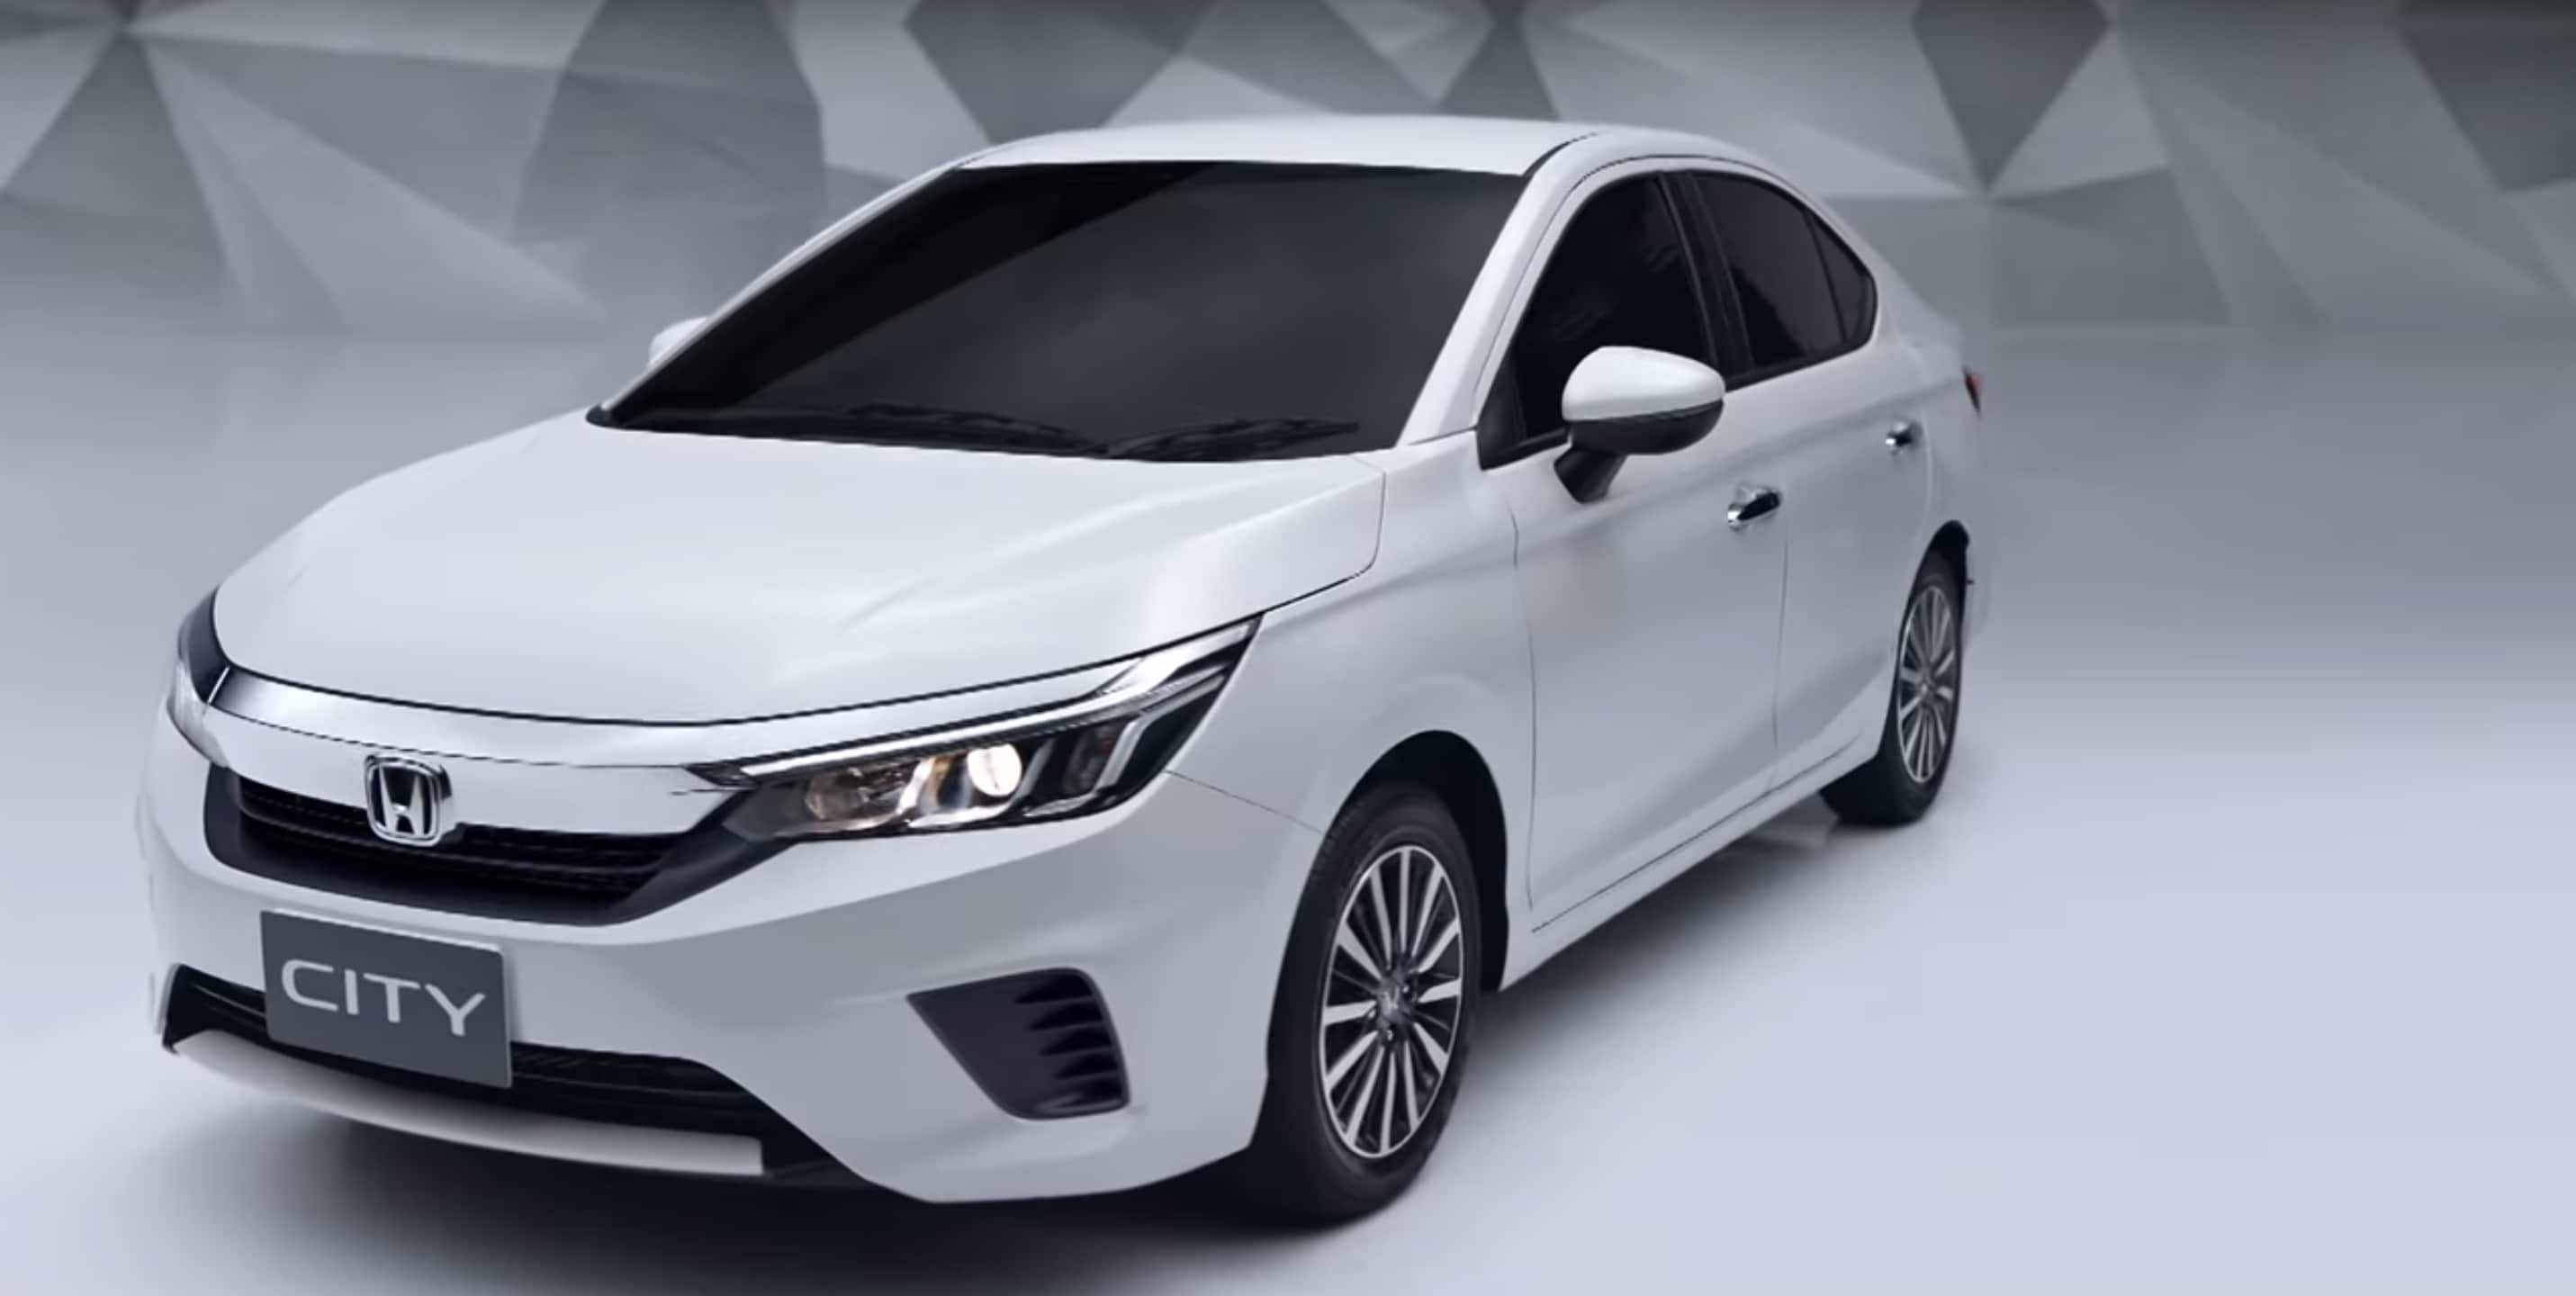 There is a bold chrome chunk right at the nose, similar to the one on Amaze, while the head lights are now razor sharp and with LEDs and daytime running lights. Photo courtesy: Youtube/Honda Thailand